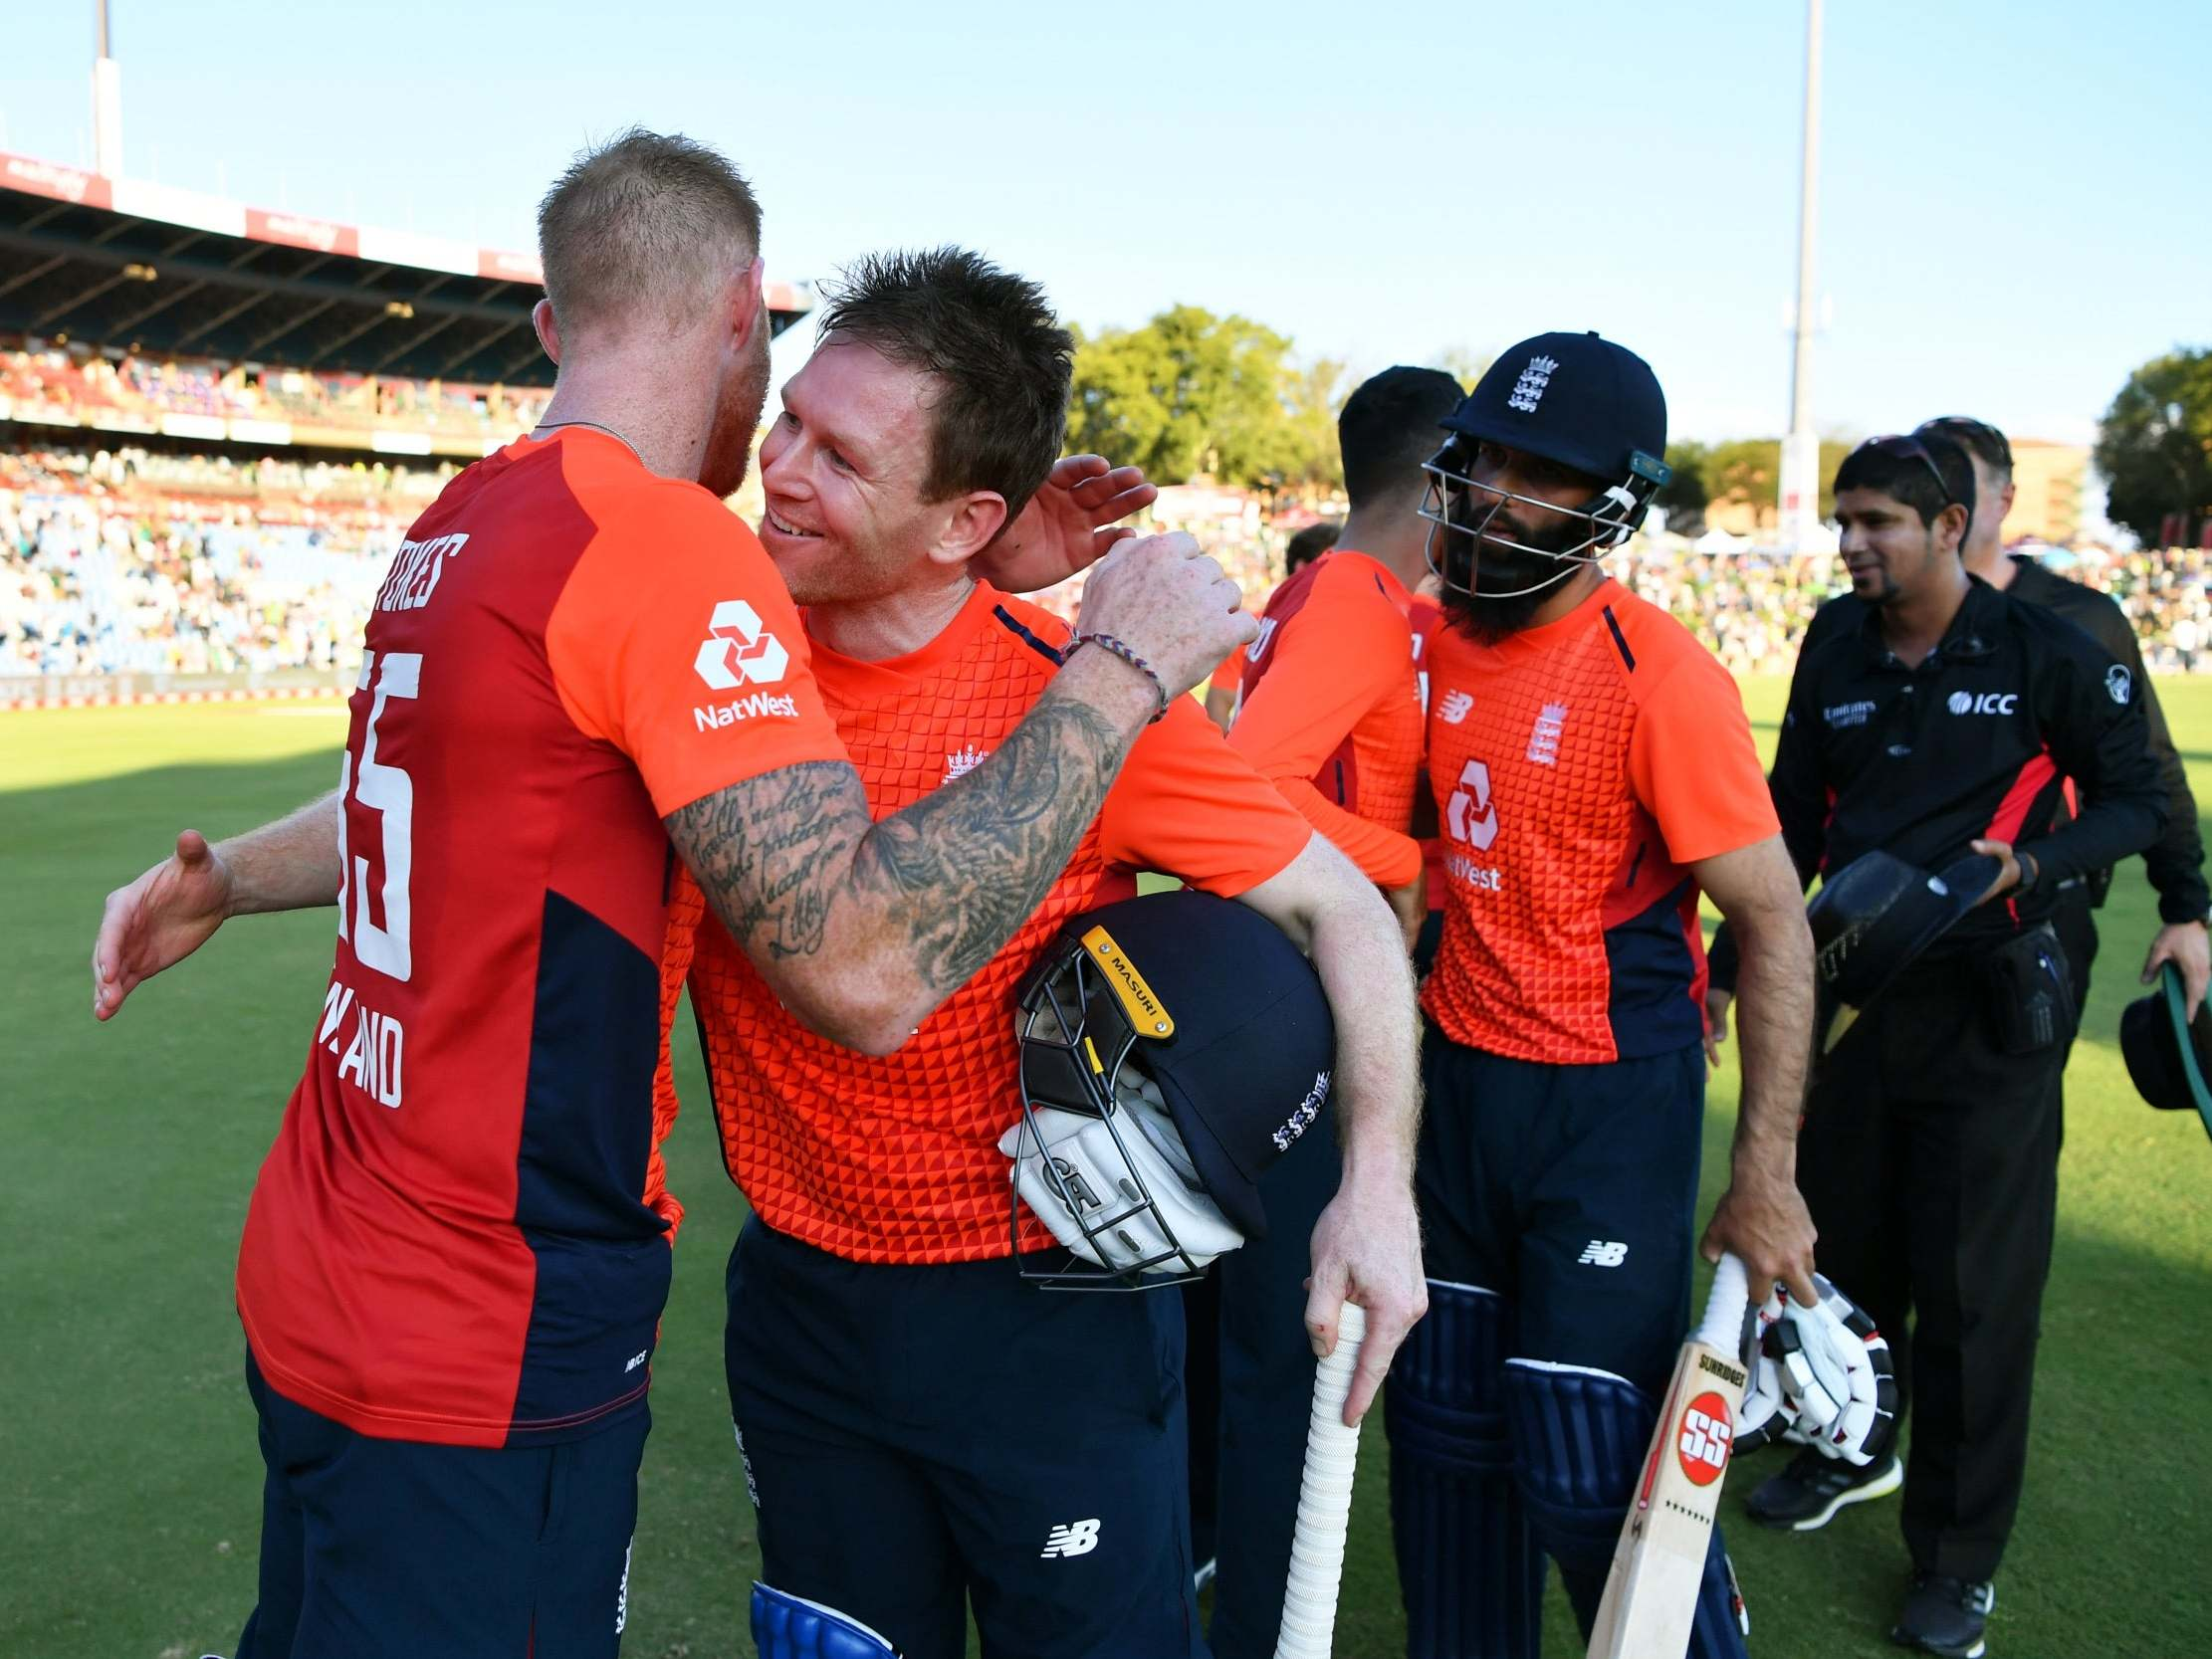 Morgan and Buttler fire England to series victory in final T20